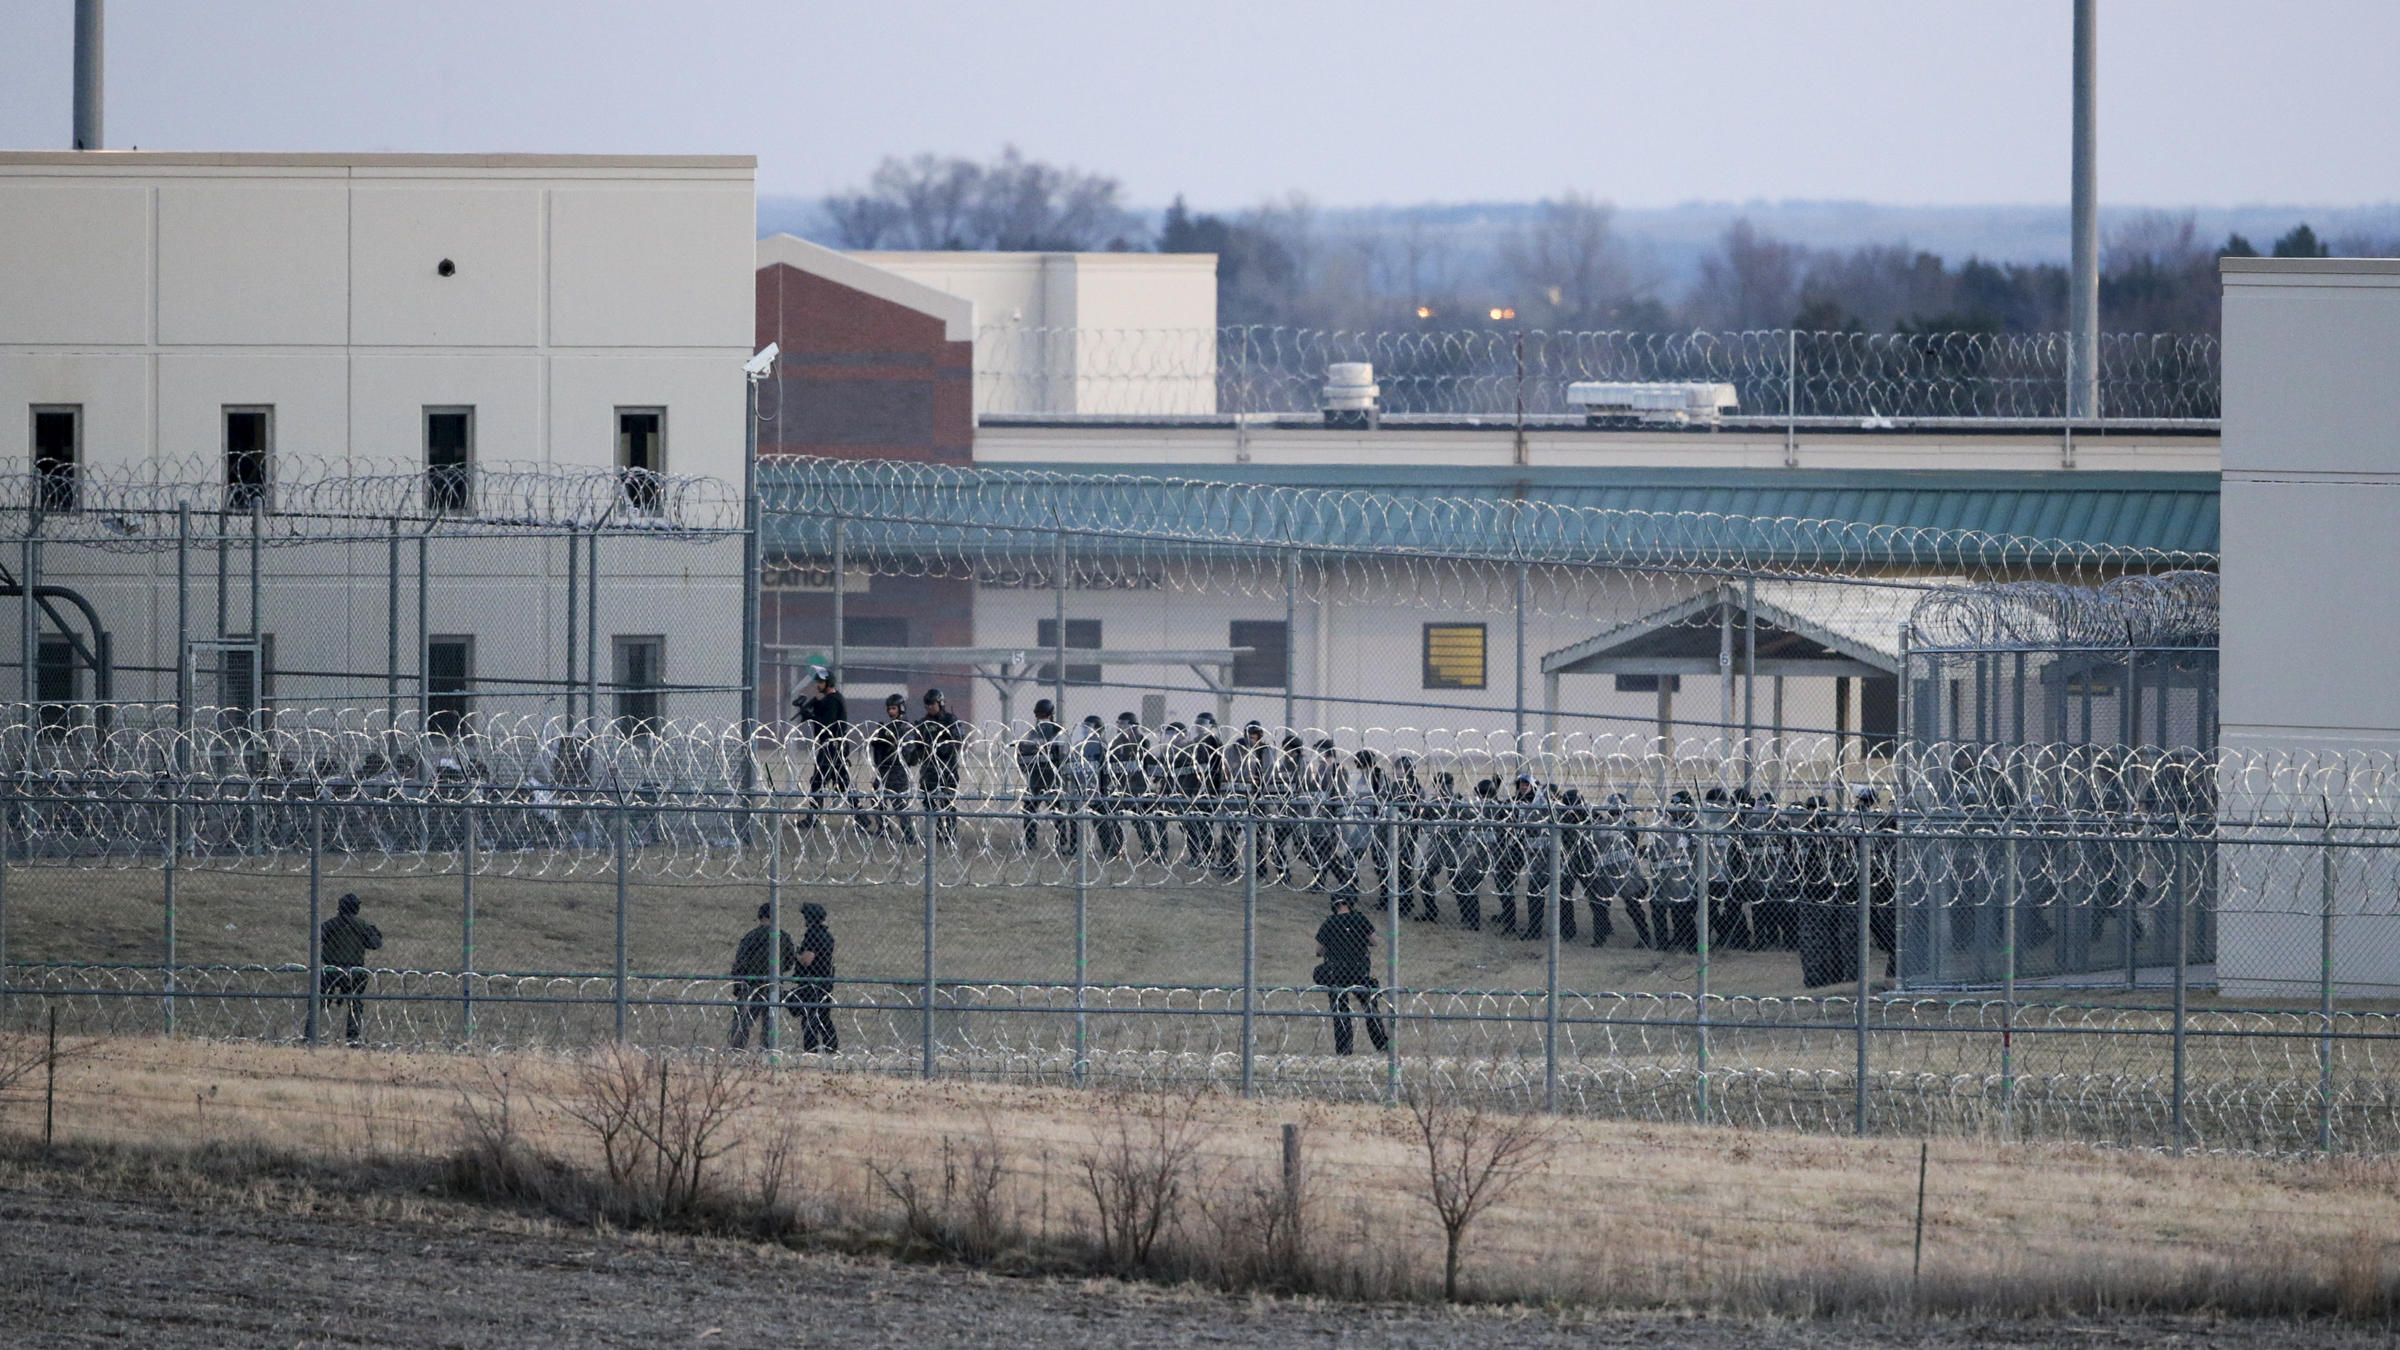 2 Inmates Are Killed In Nebraska Prison Disturbance | WJSU